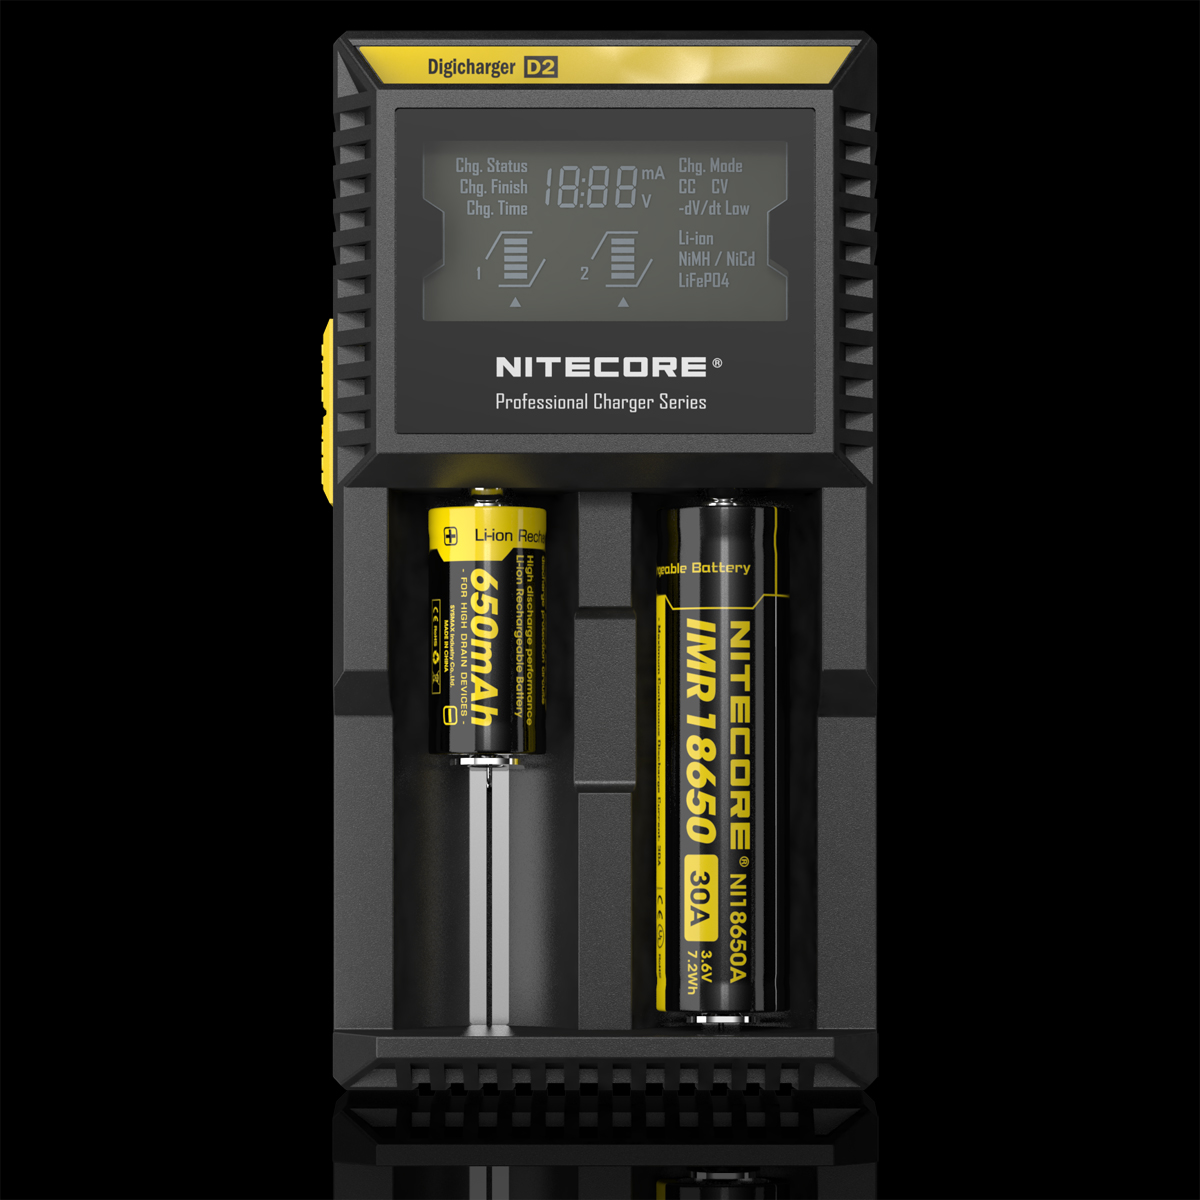 NITECORE D2 DIGICHARGER - ADVANCED DIGITAL SMART CHARGER Photo